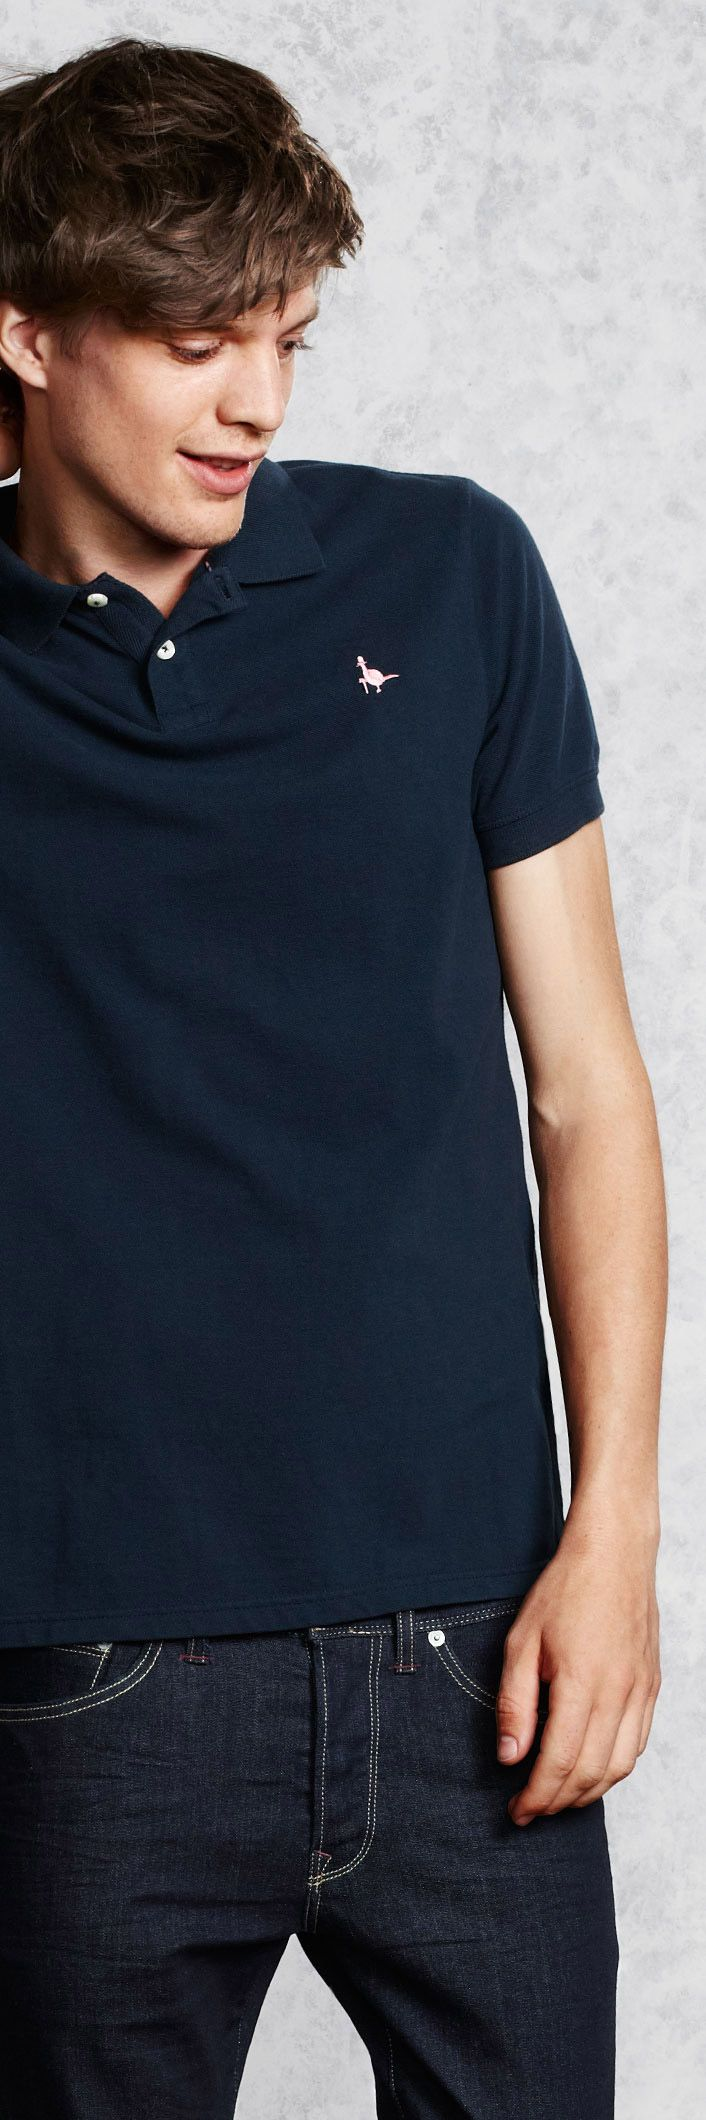 83092f47bc7 Mens Polos | Designer Polo Shirts | Jack Wills | Guys Style | Polo ...